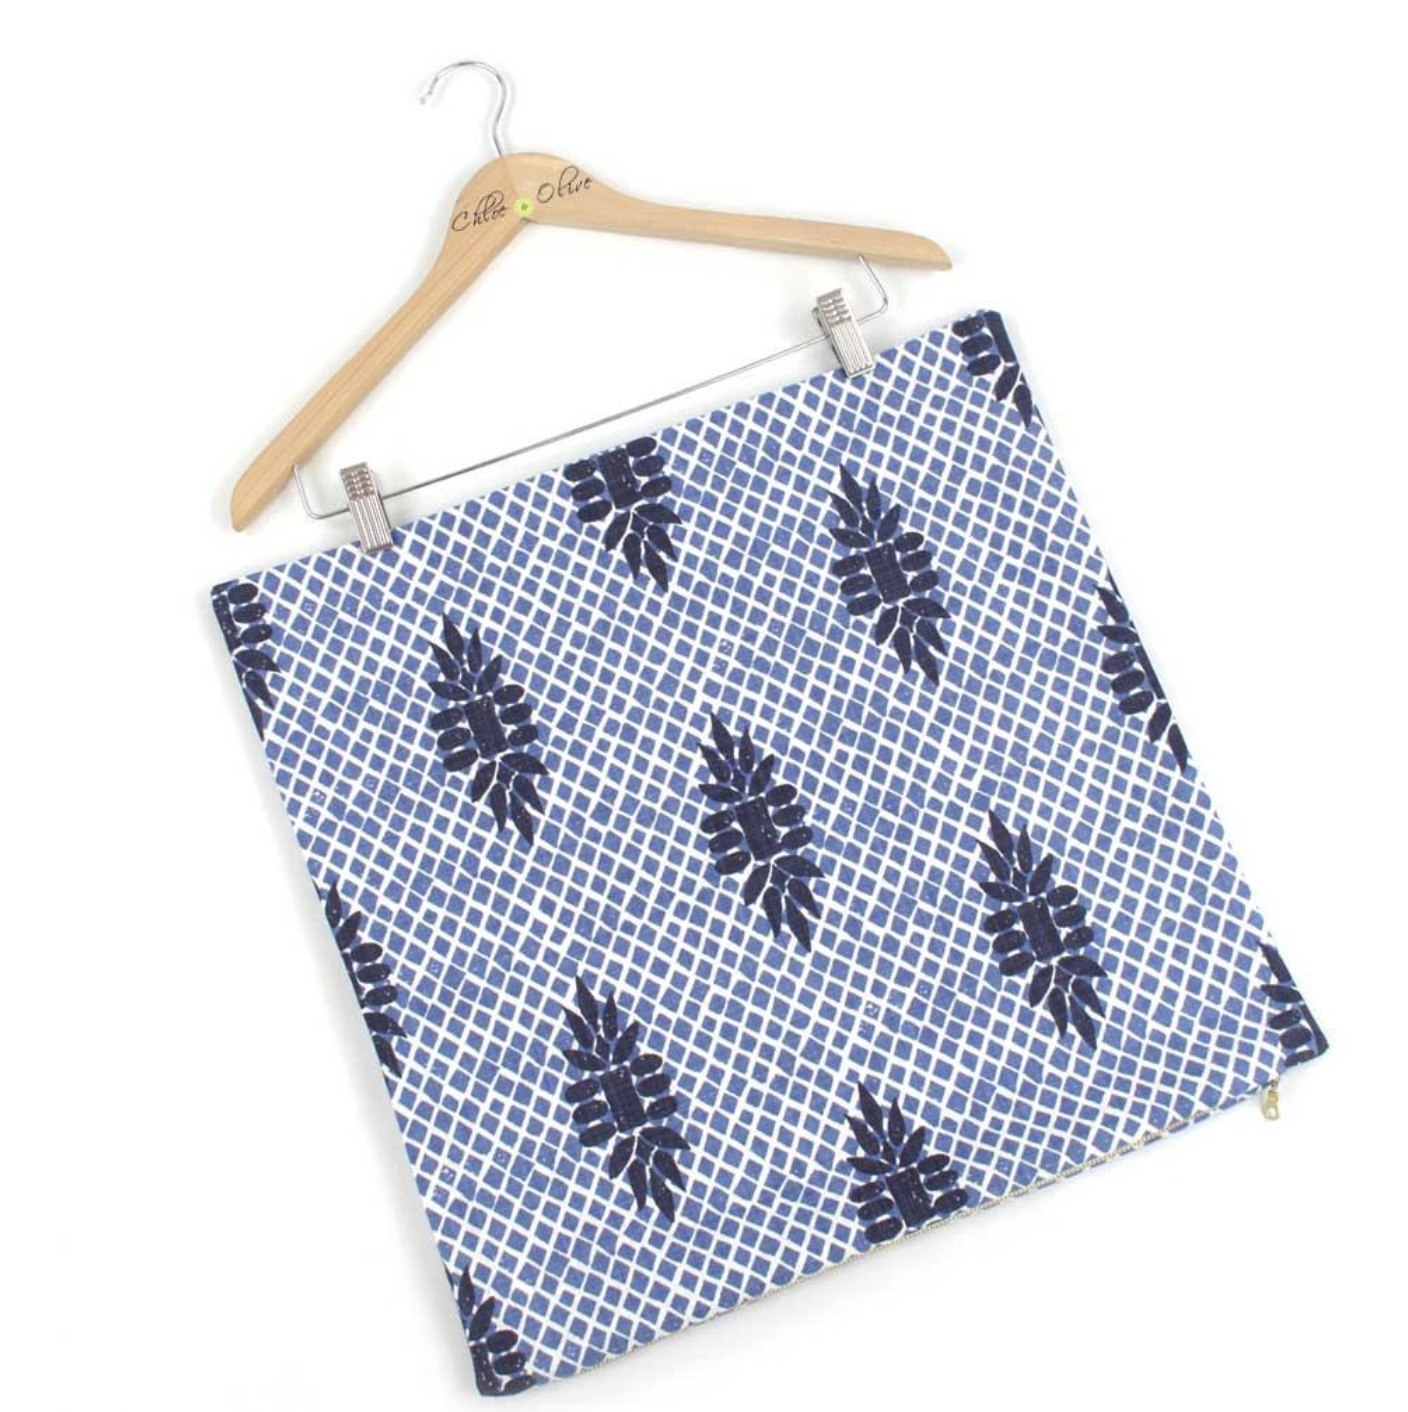 blue and white home decor - this pillow cover can feel modern and traditional with a global flair